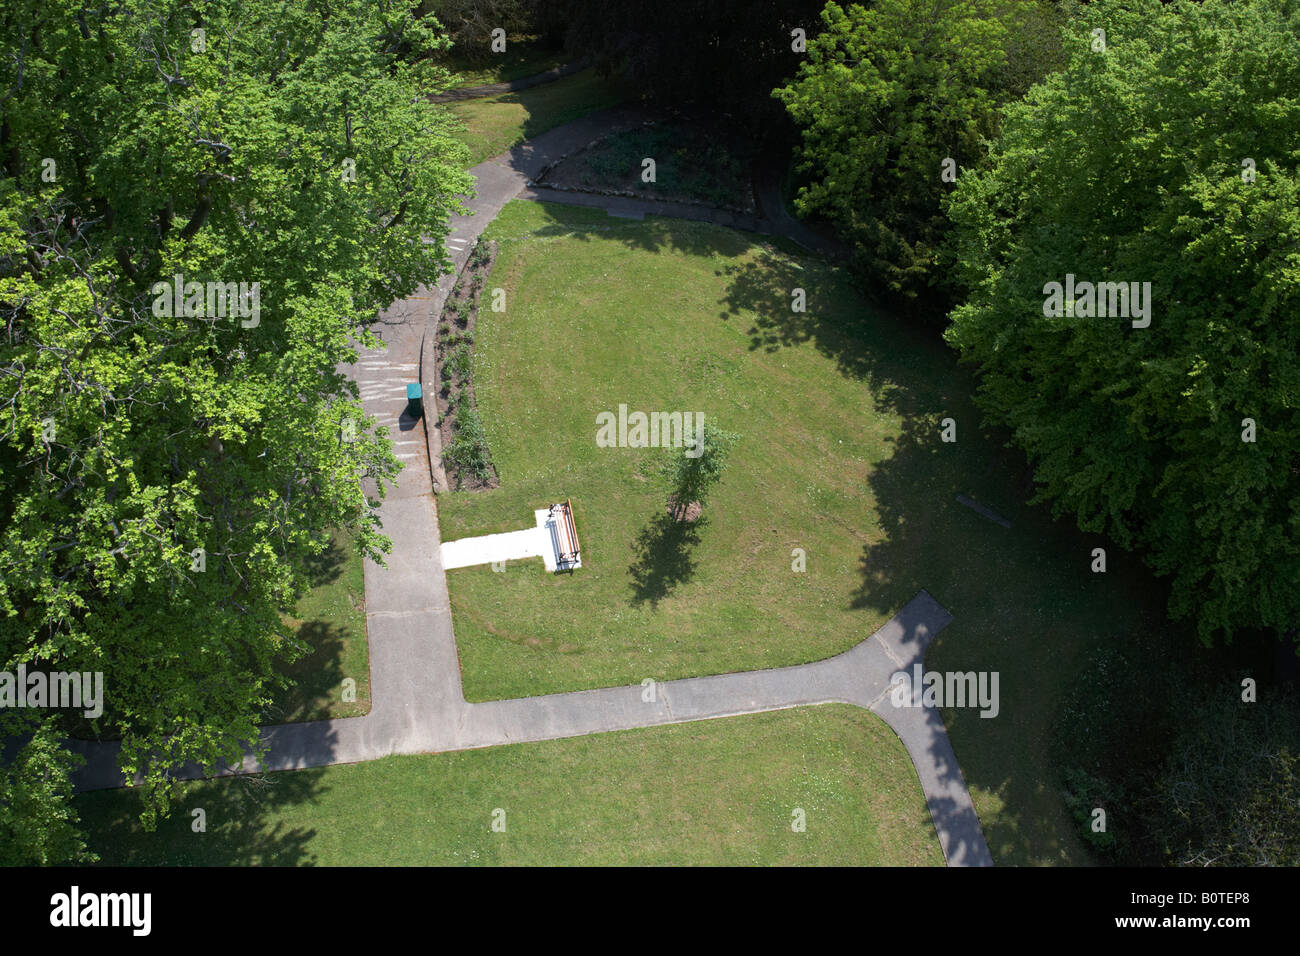 aerial view of parkland from the coles monument including pathway bench litter bin lawns trees in forthill park - Stock Image